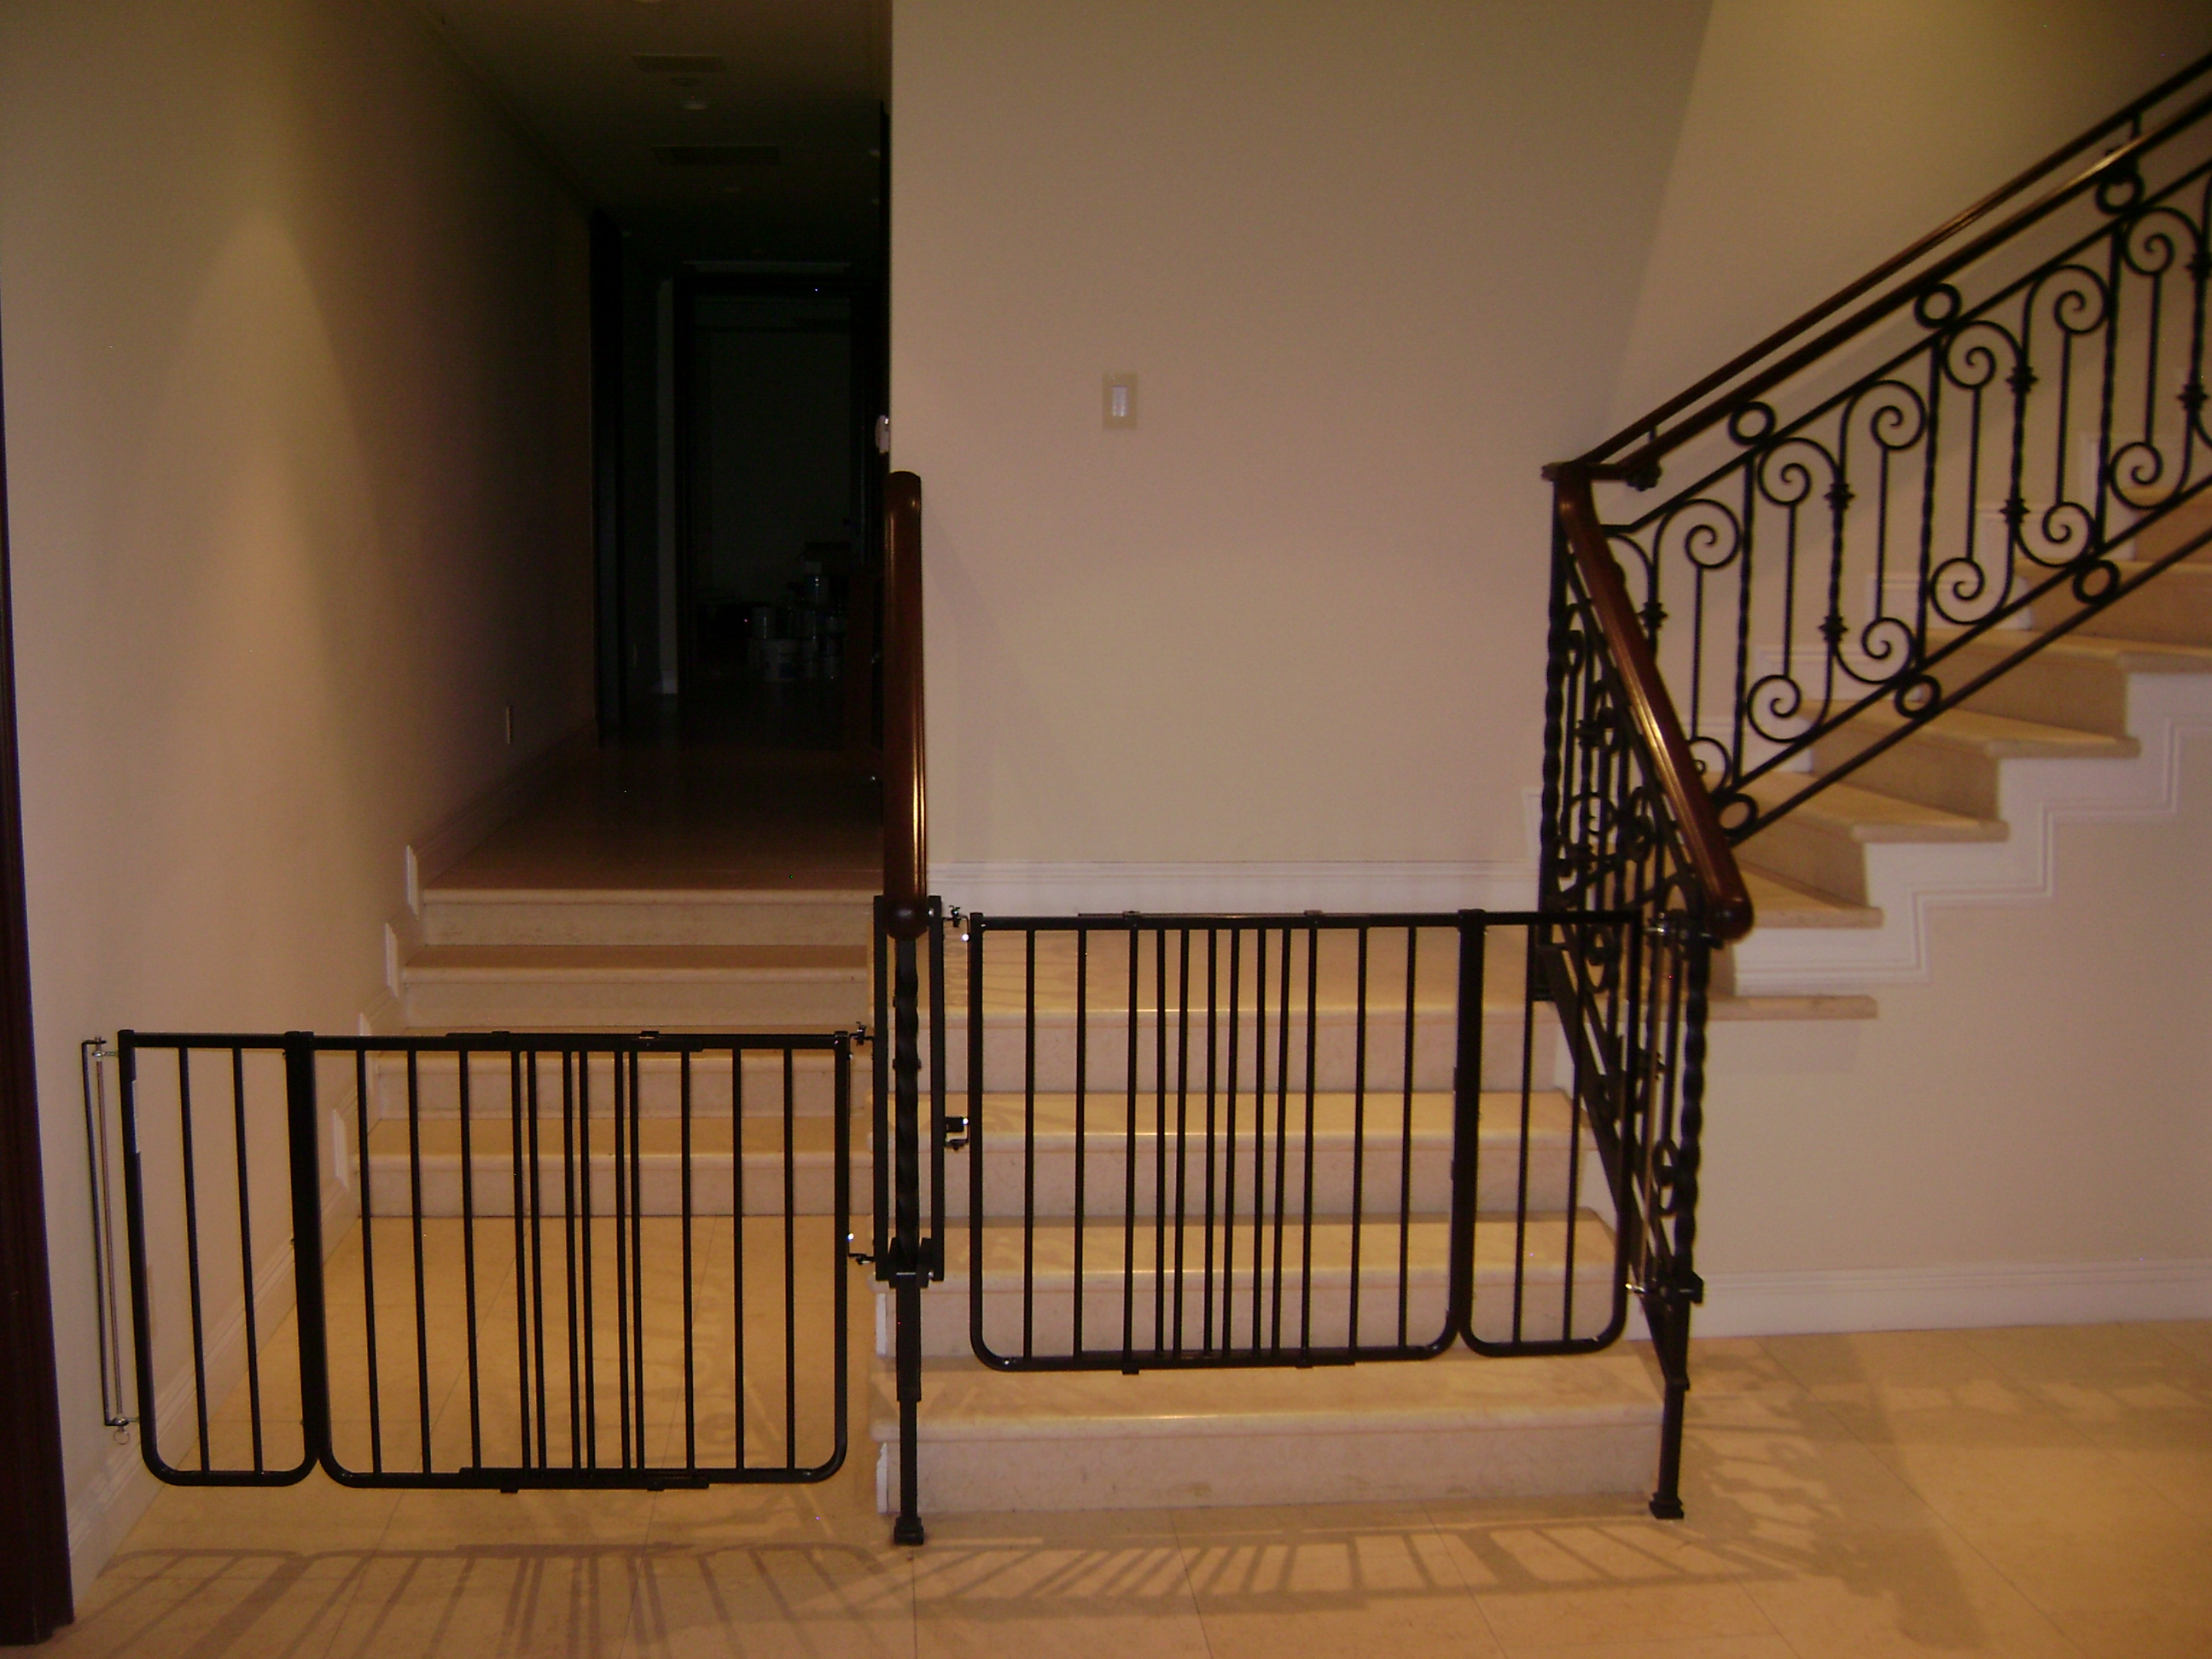 Keep Stair Gates Closed At All Times When Small Children Are In The Home We Get Sidetracked And Forget Easily So Just Close It